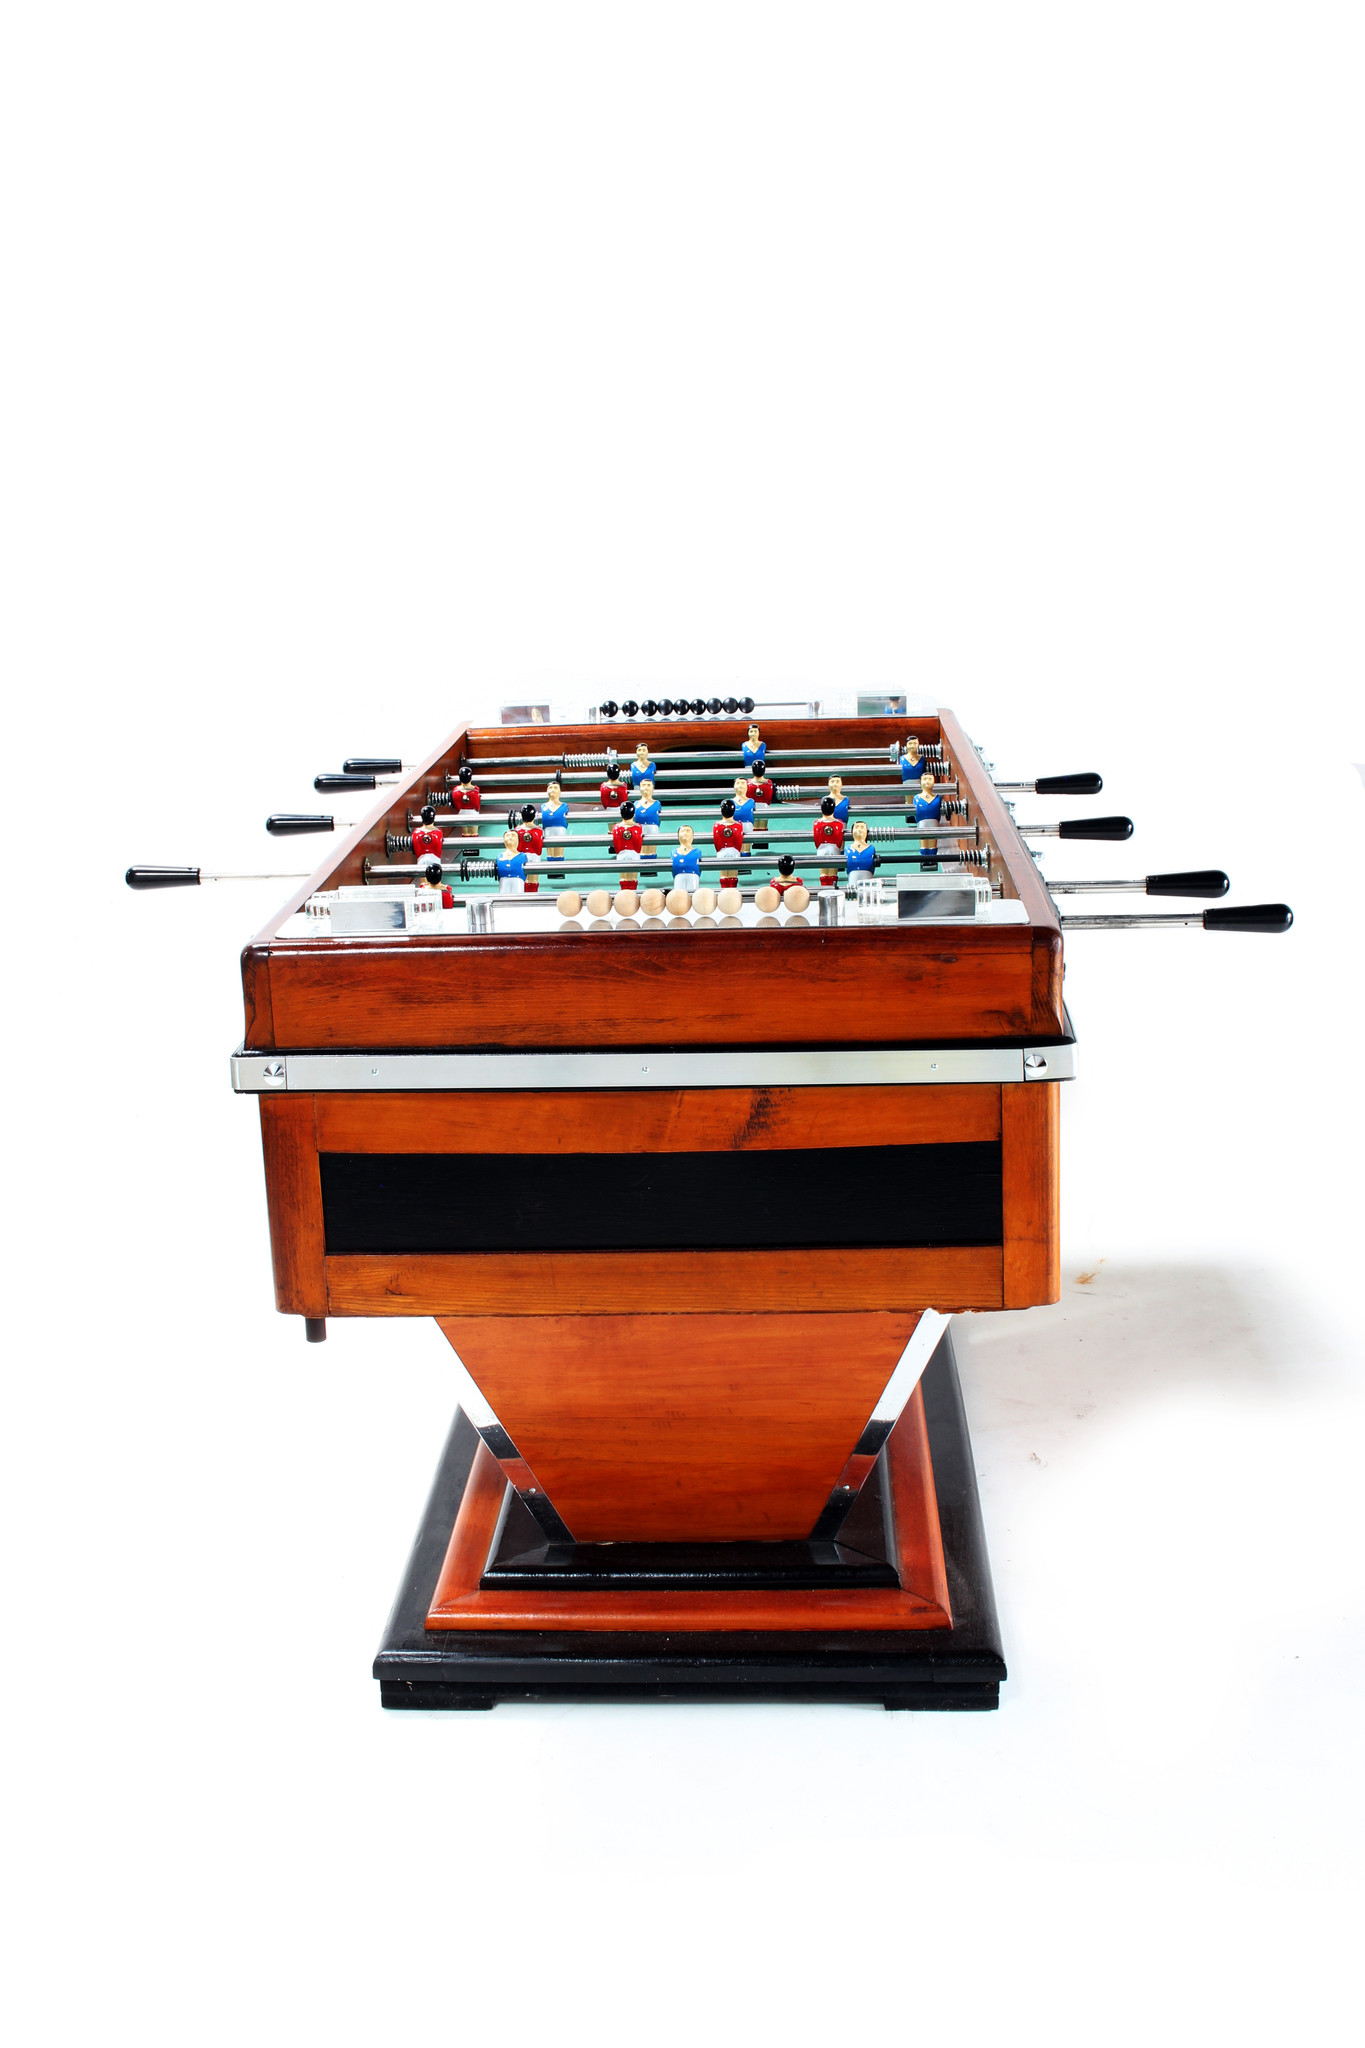 Vintage table football game 1940's